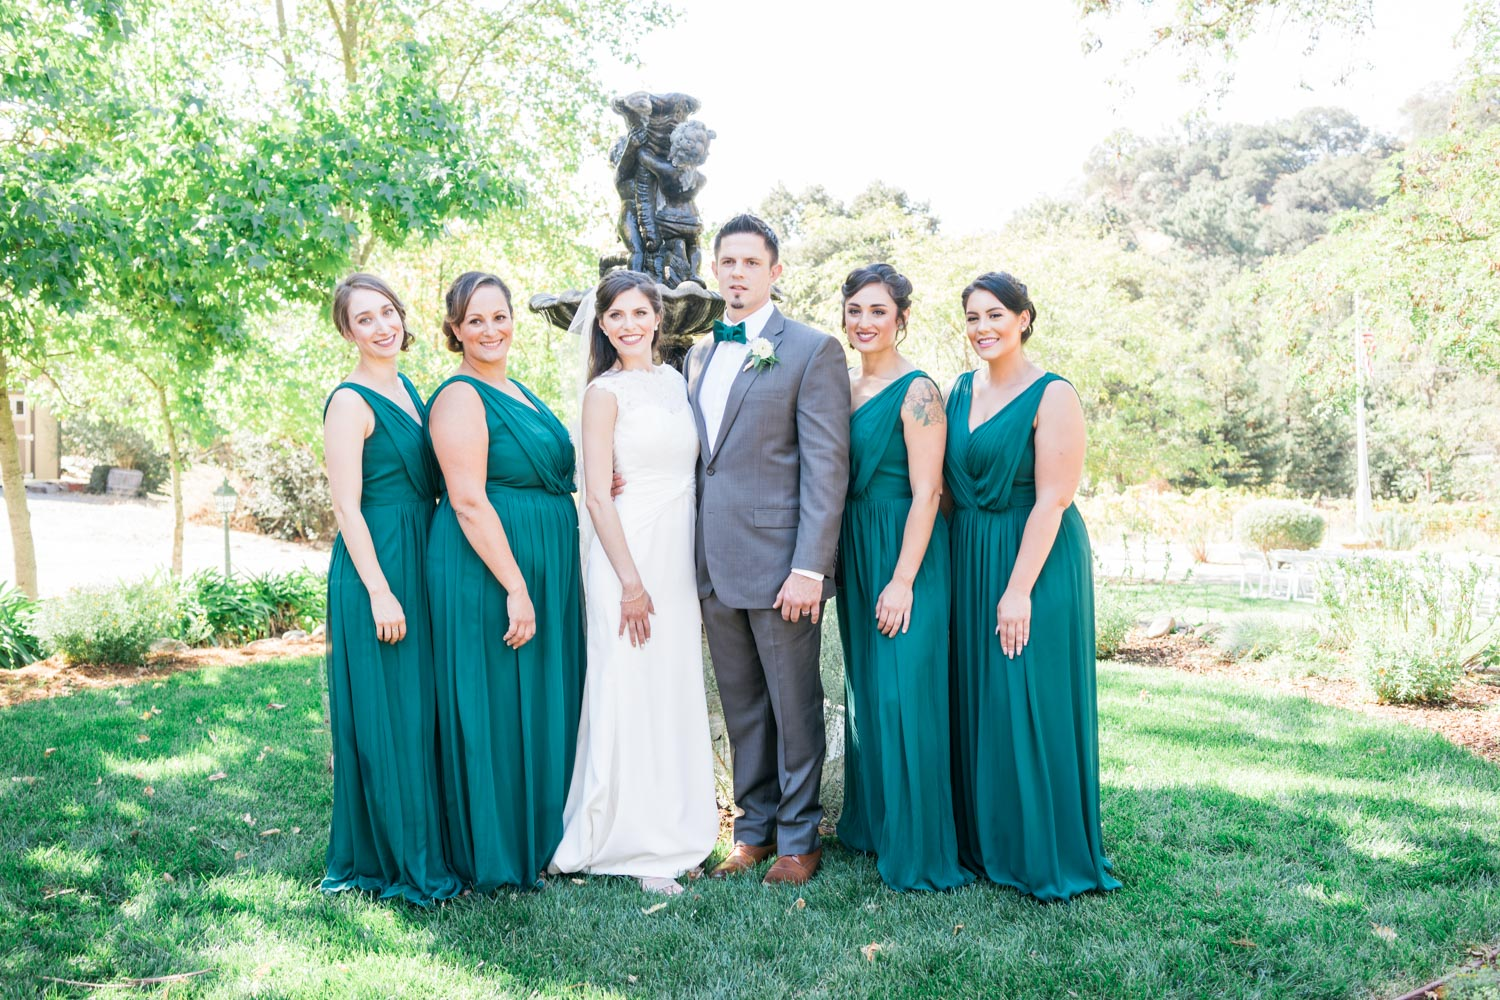 Awesome Bridesmaid Photo Ideas - My lead photographer here Kenny asked the right question instead of commanding how to and what to do.